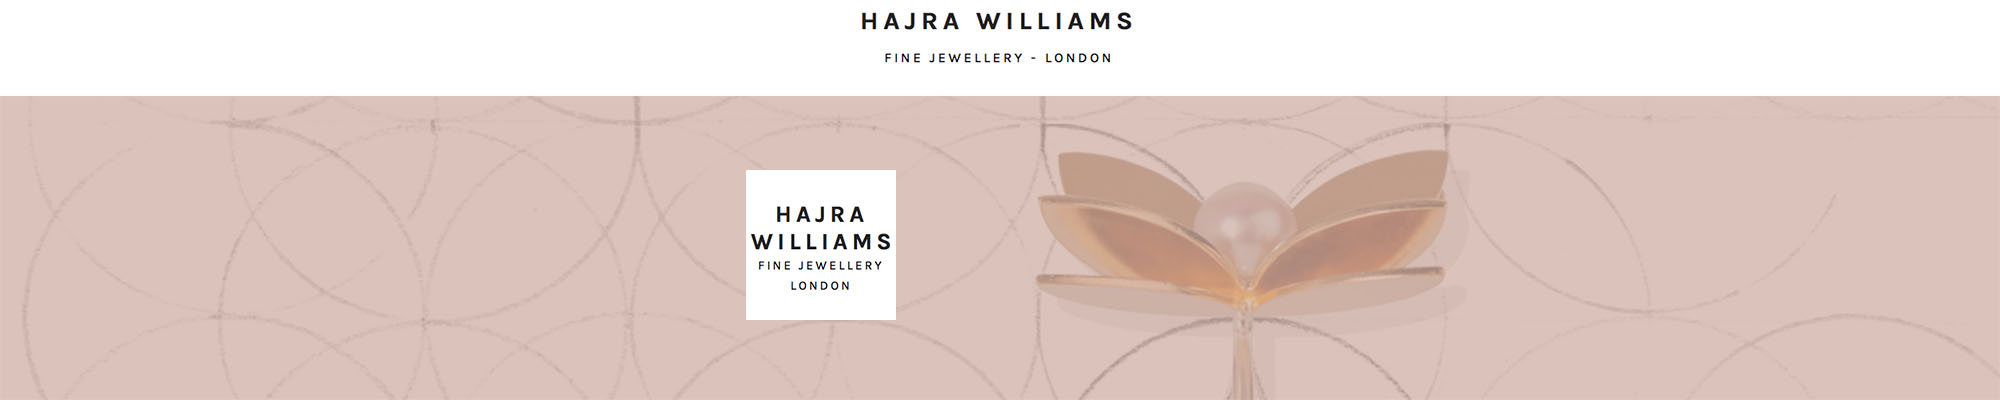 Hajra Williams banner image